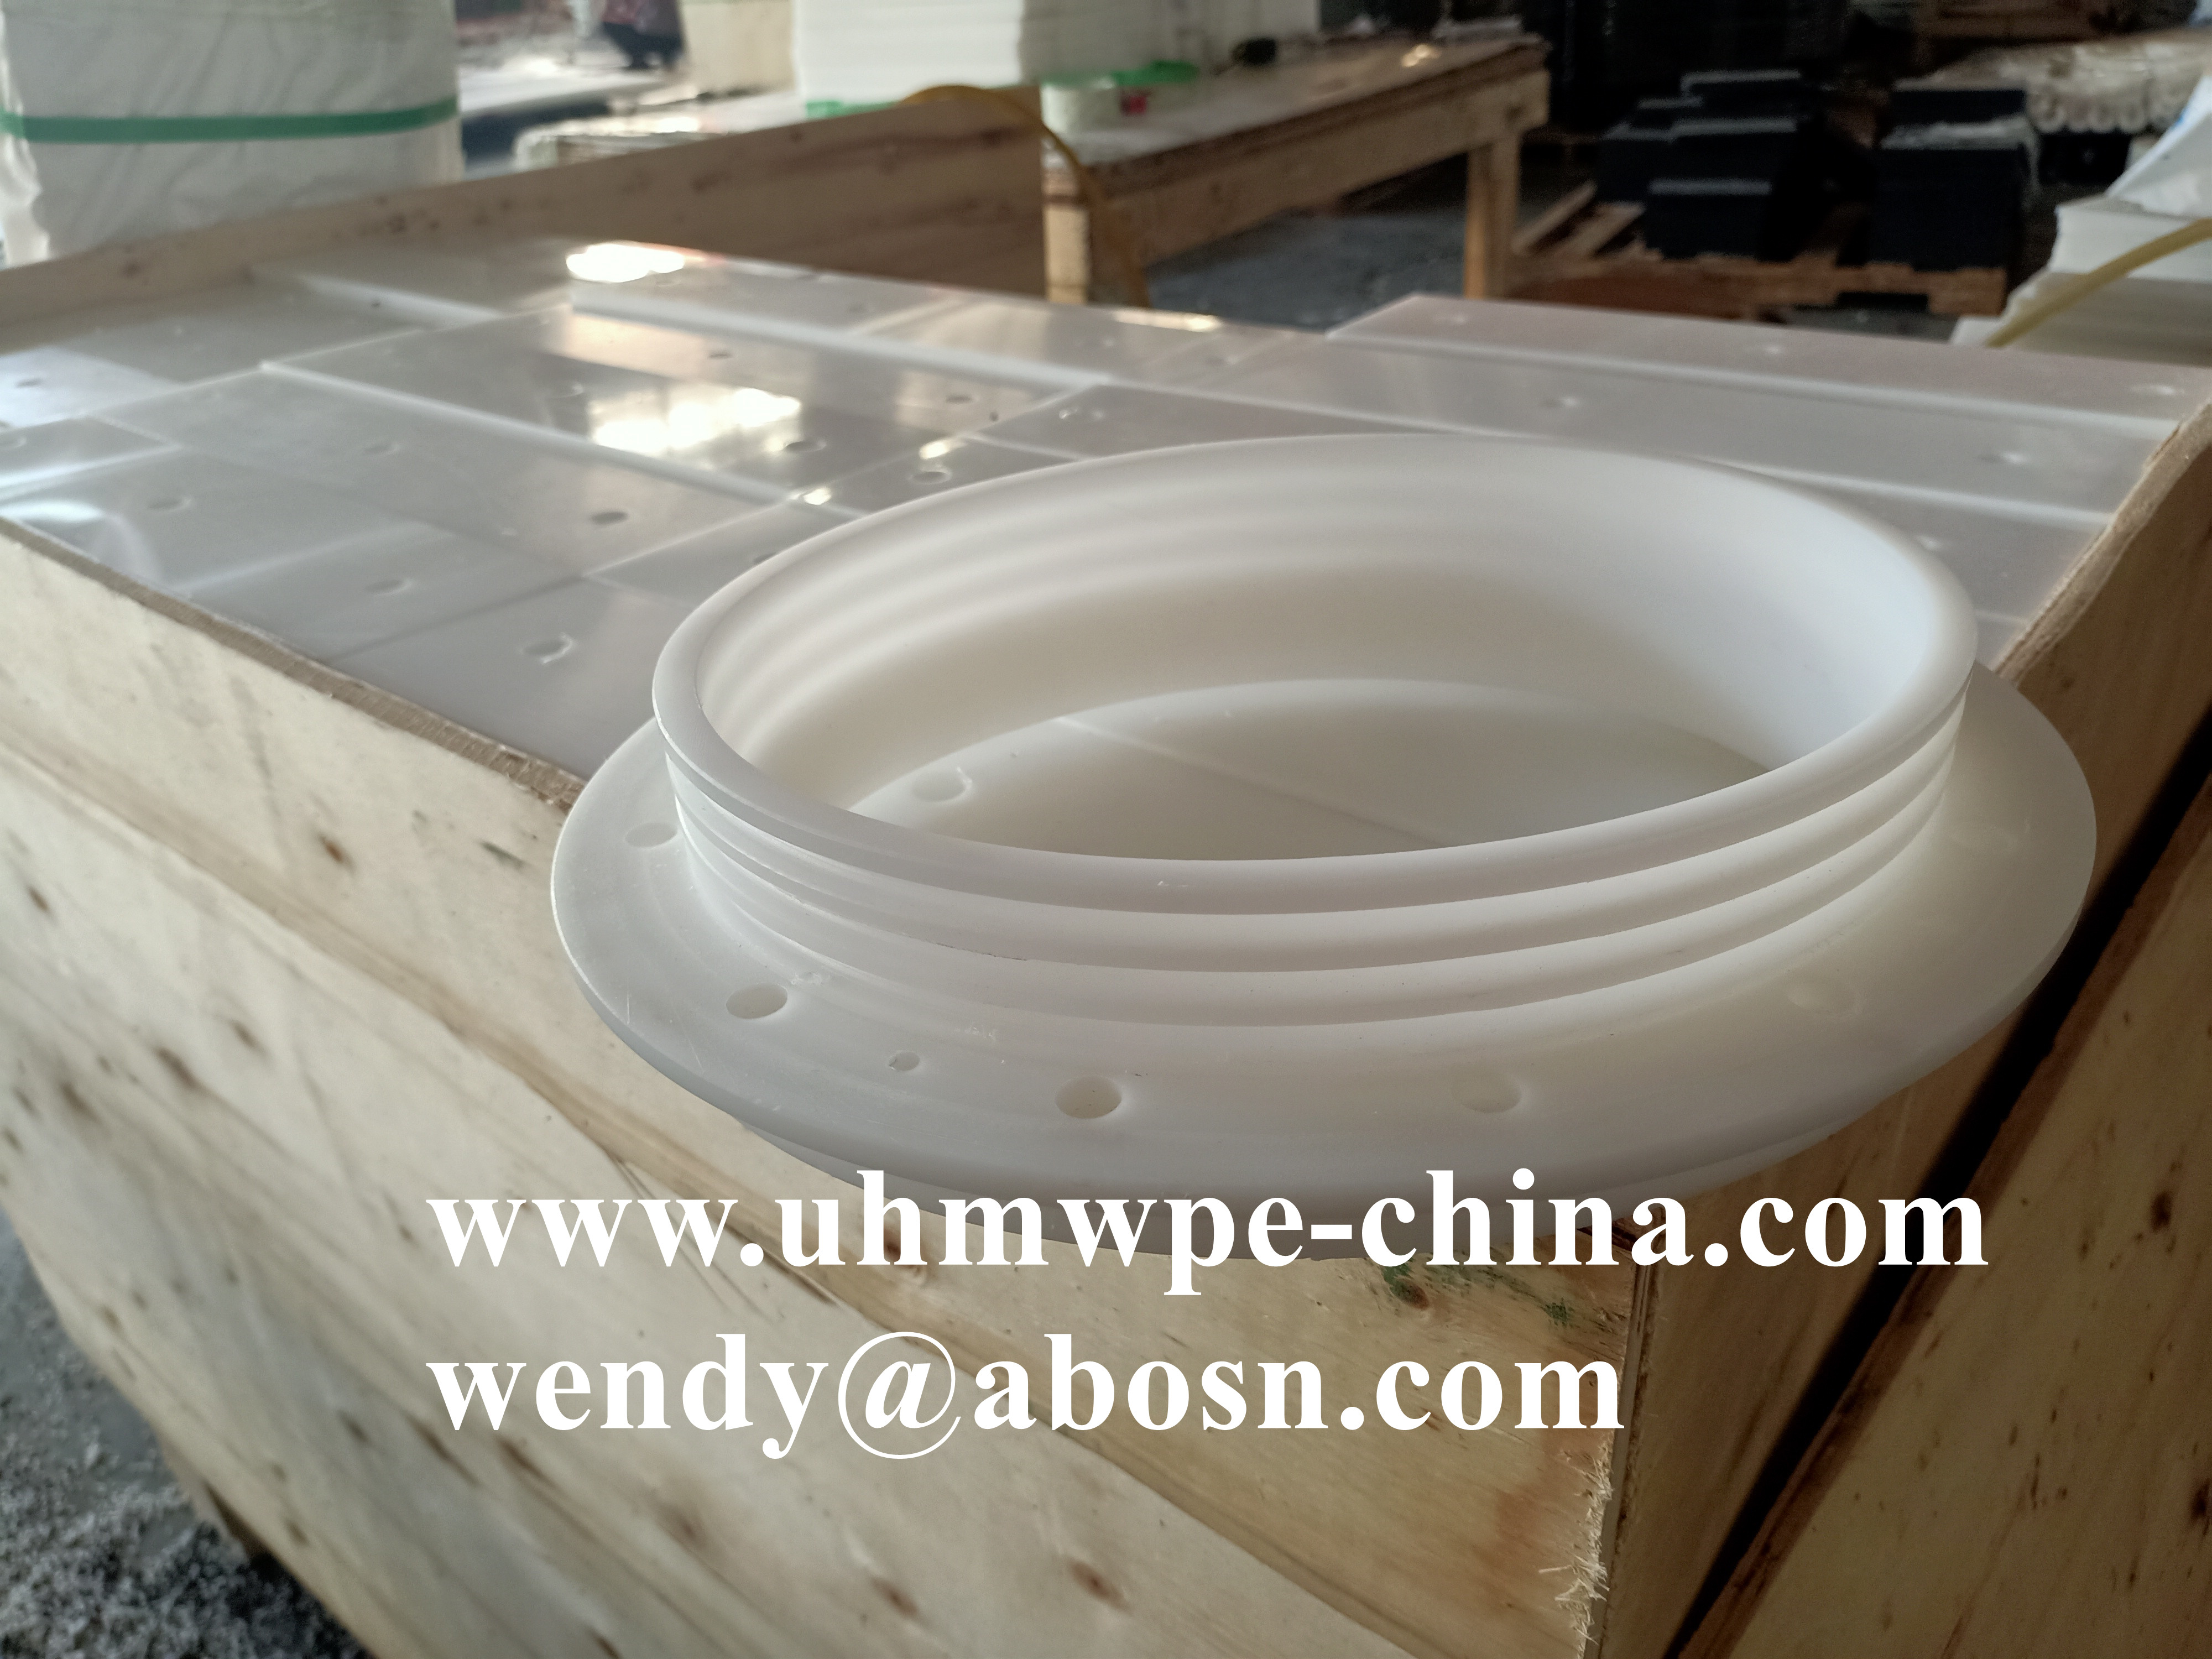 Customized UHMWPE Component